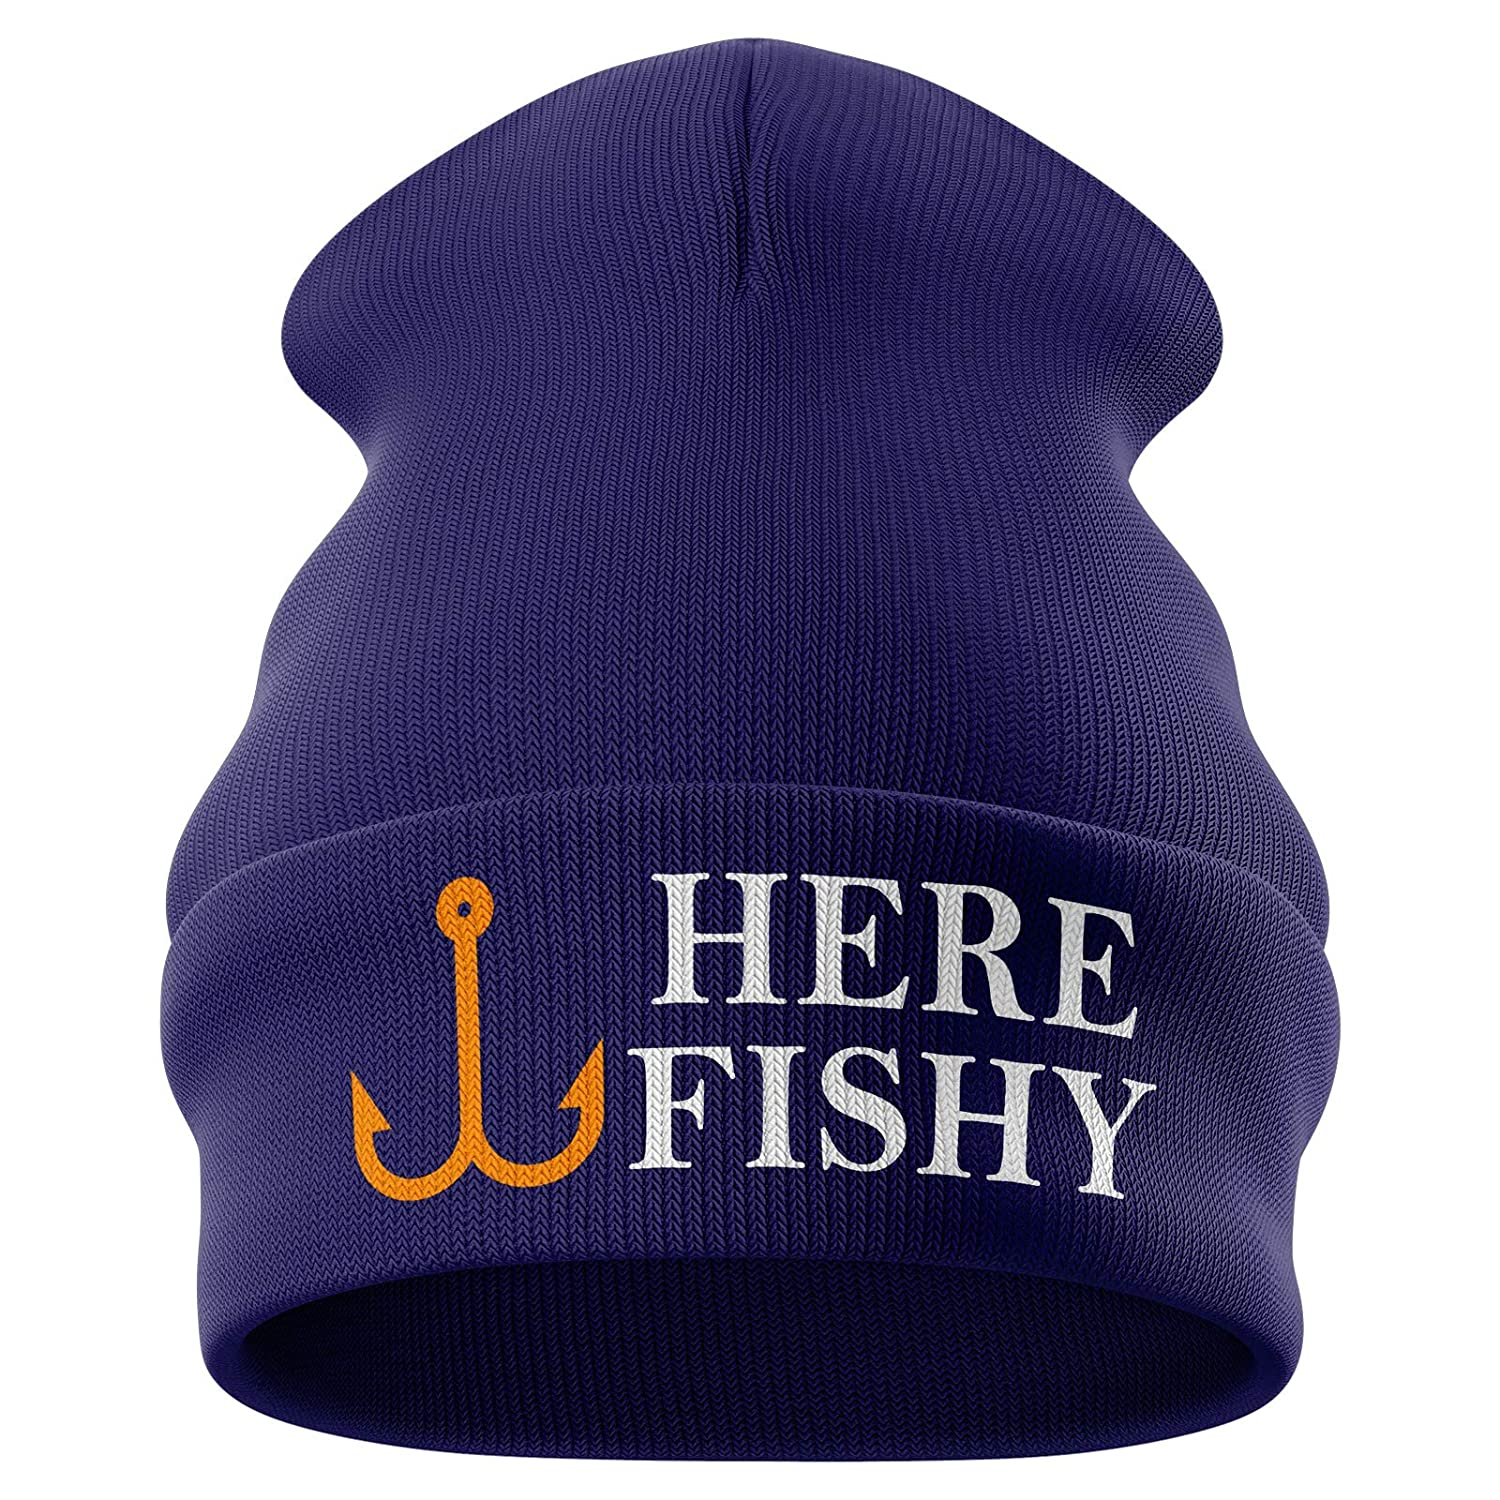 Purple Print House Fishing Gifts for Men - Here Fishy Fishy Embroidered Carp Fishing Beanie Hat Mens Presents Funny Fishing Tackle